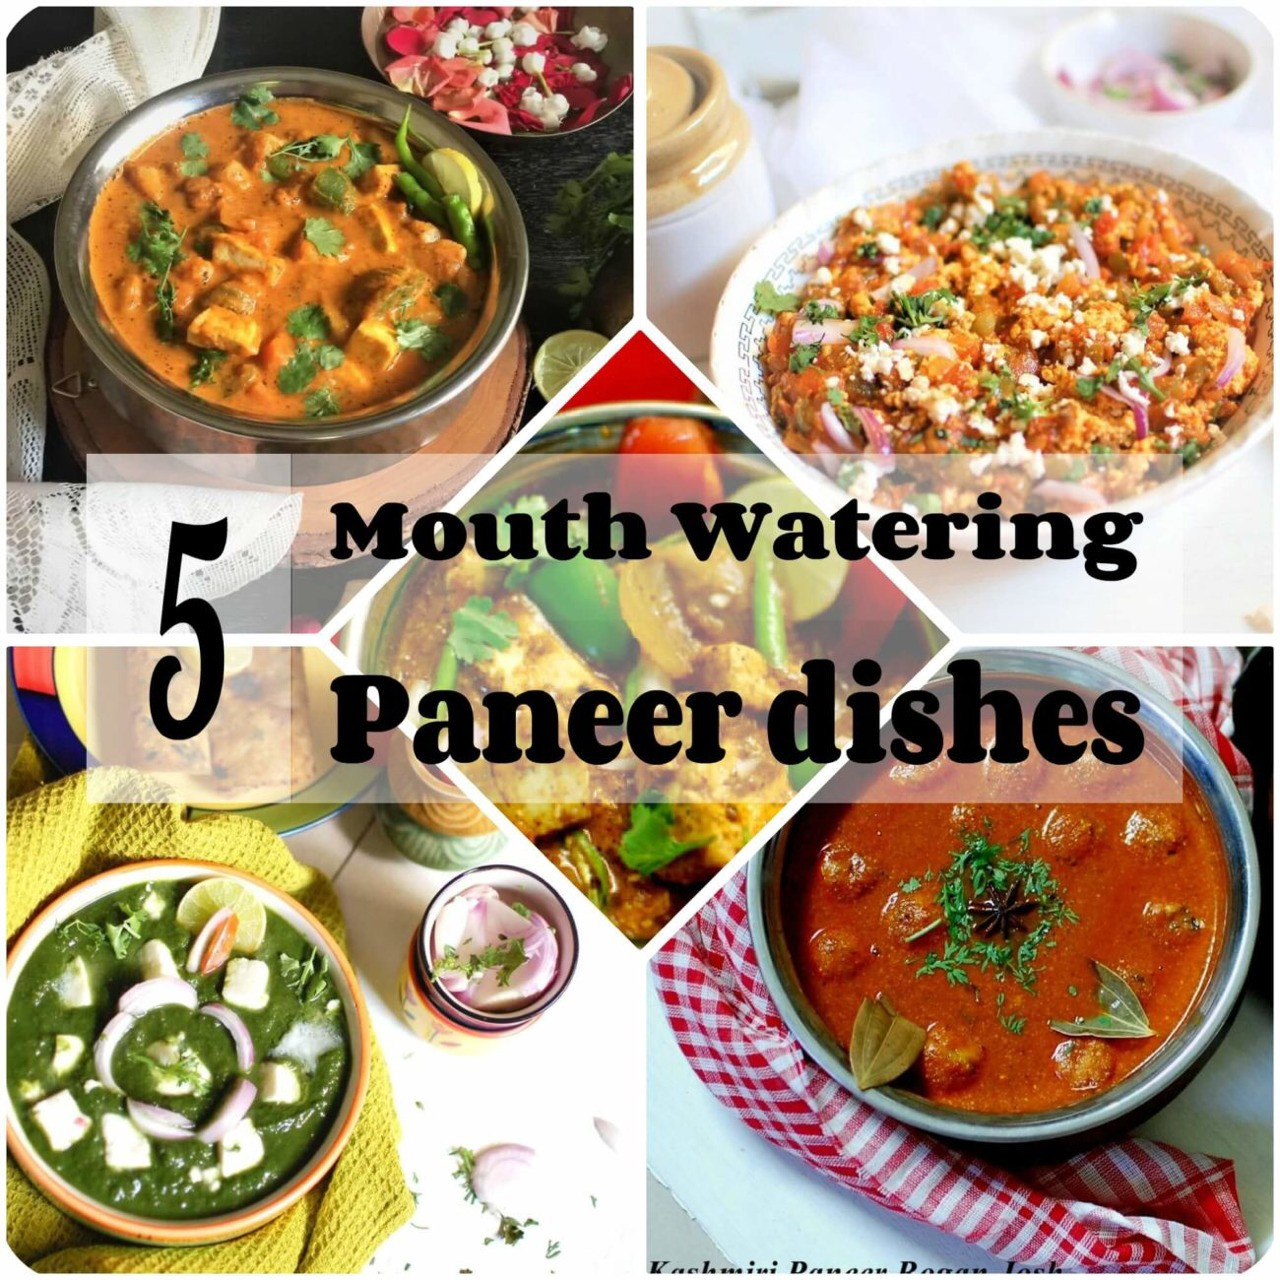 5 mouth watering Paneer (Cottage Cheese) dishes' recipes